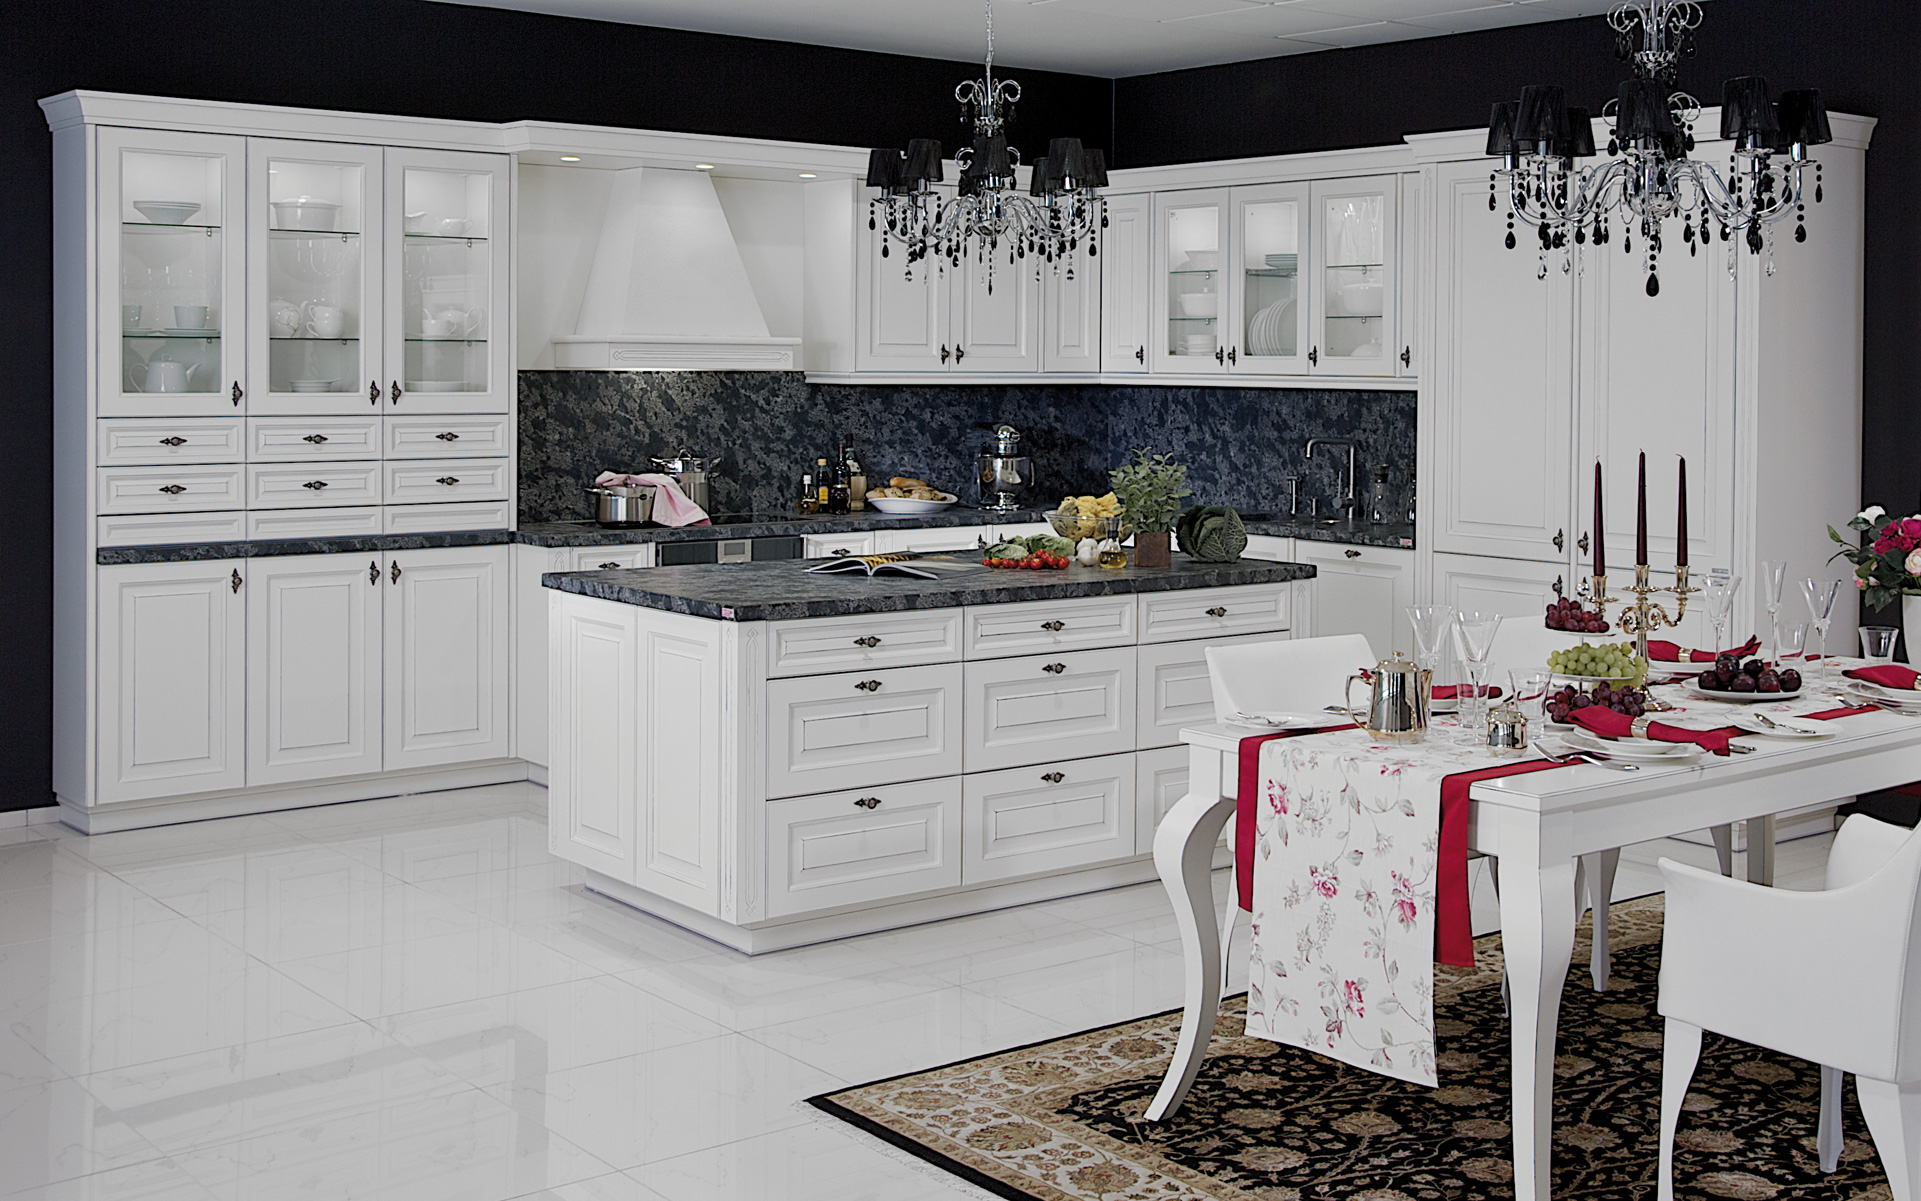 Milano Kitchen on modern interior design style